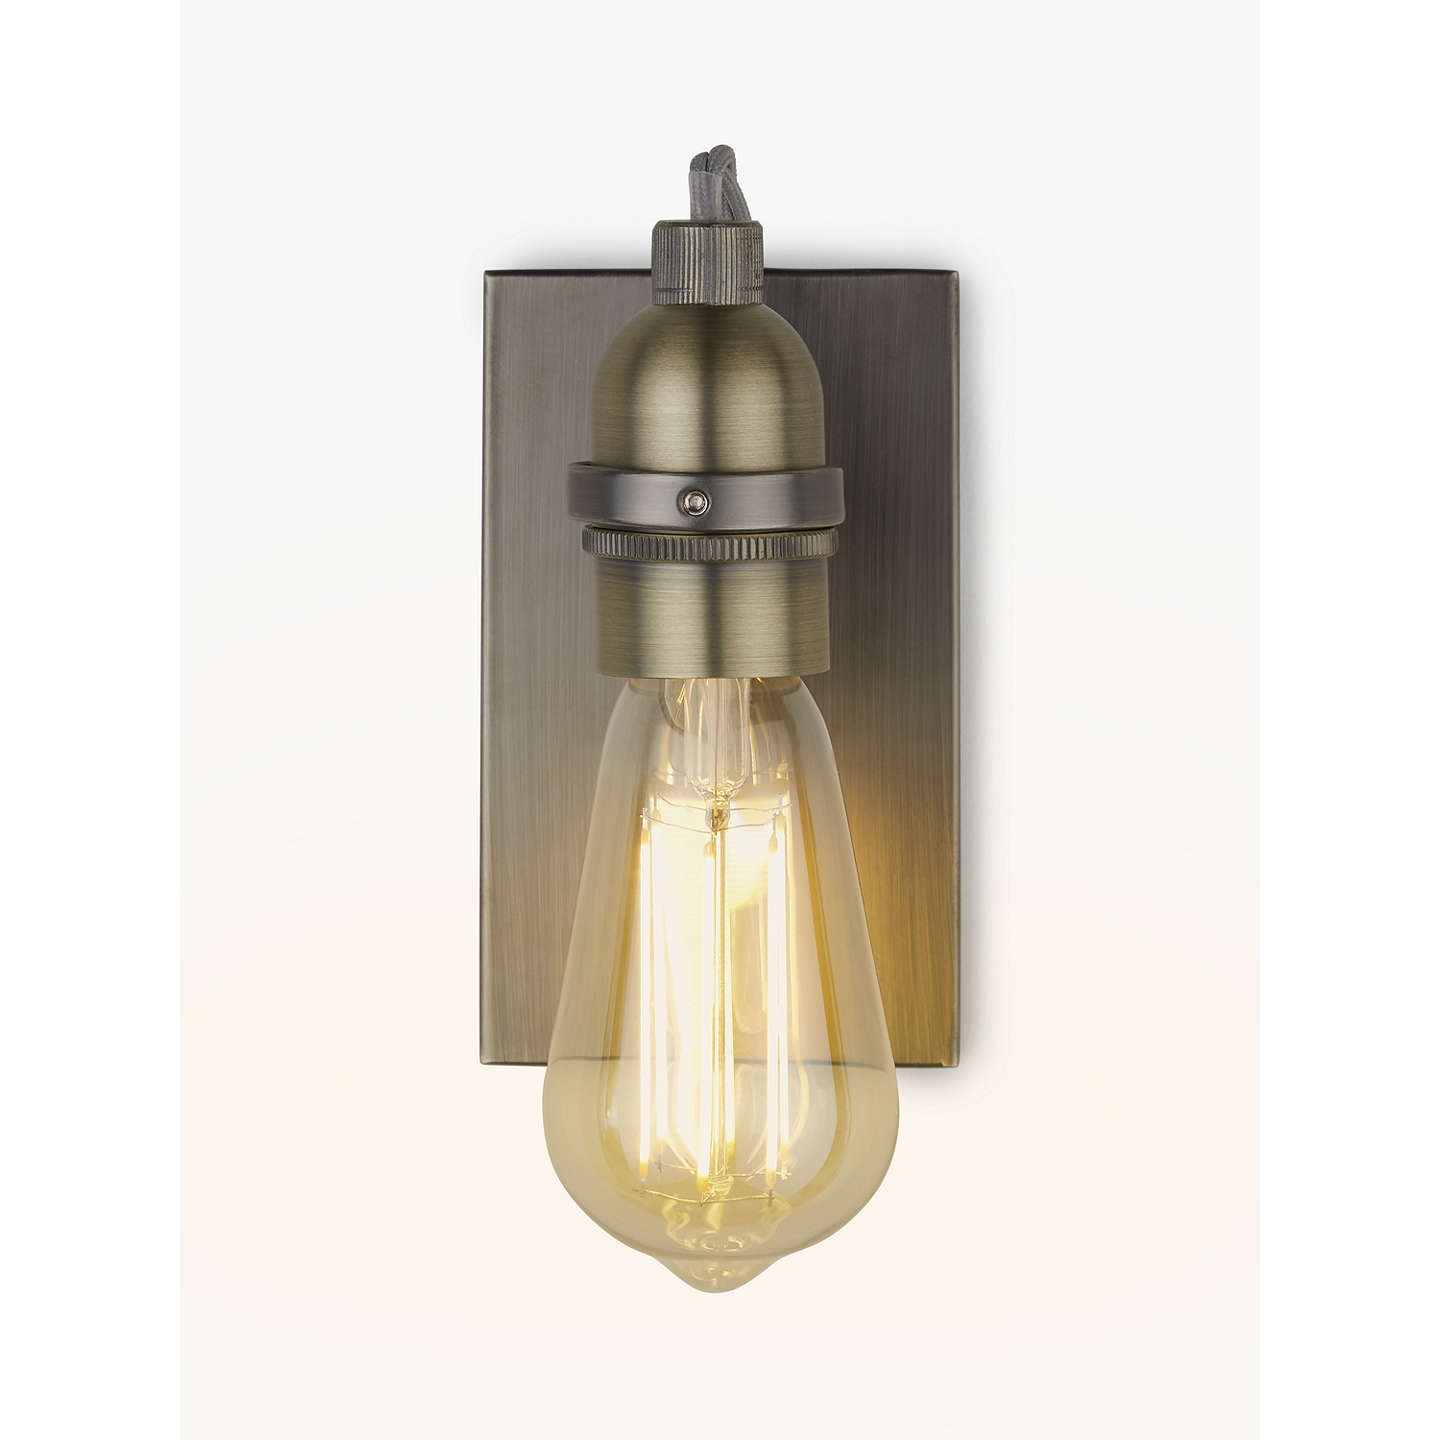 John lewis bistro bulb wall light antique brass at john lewis buyjohn lewis bistro bulb wall light antique brass online at johnlewis aloadofball Choice Image